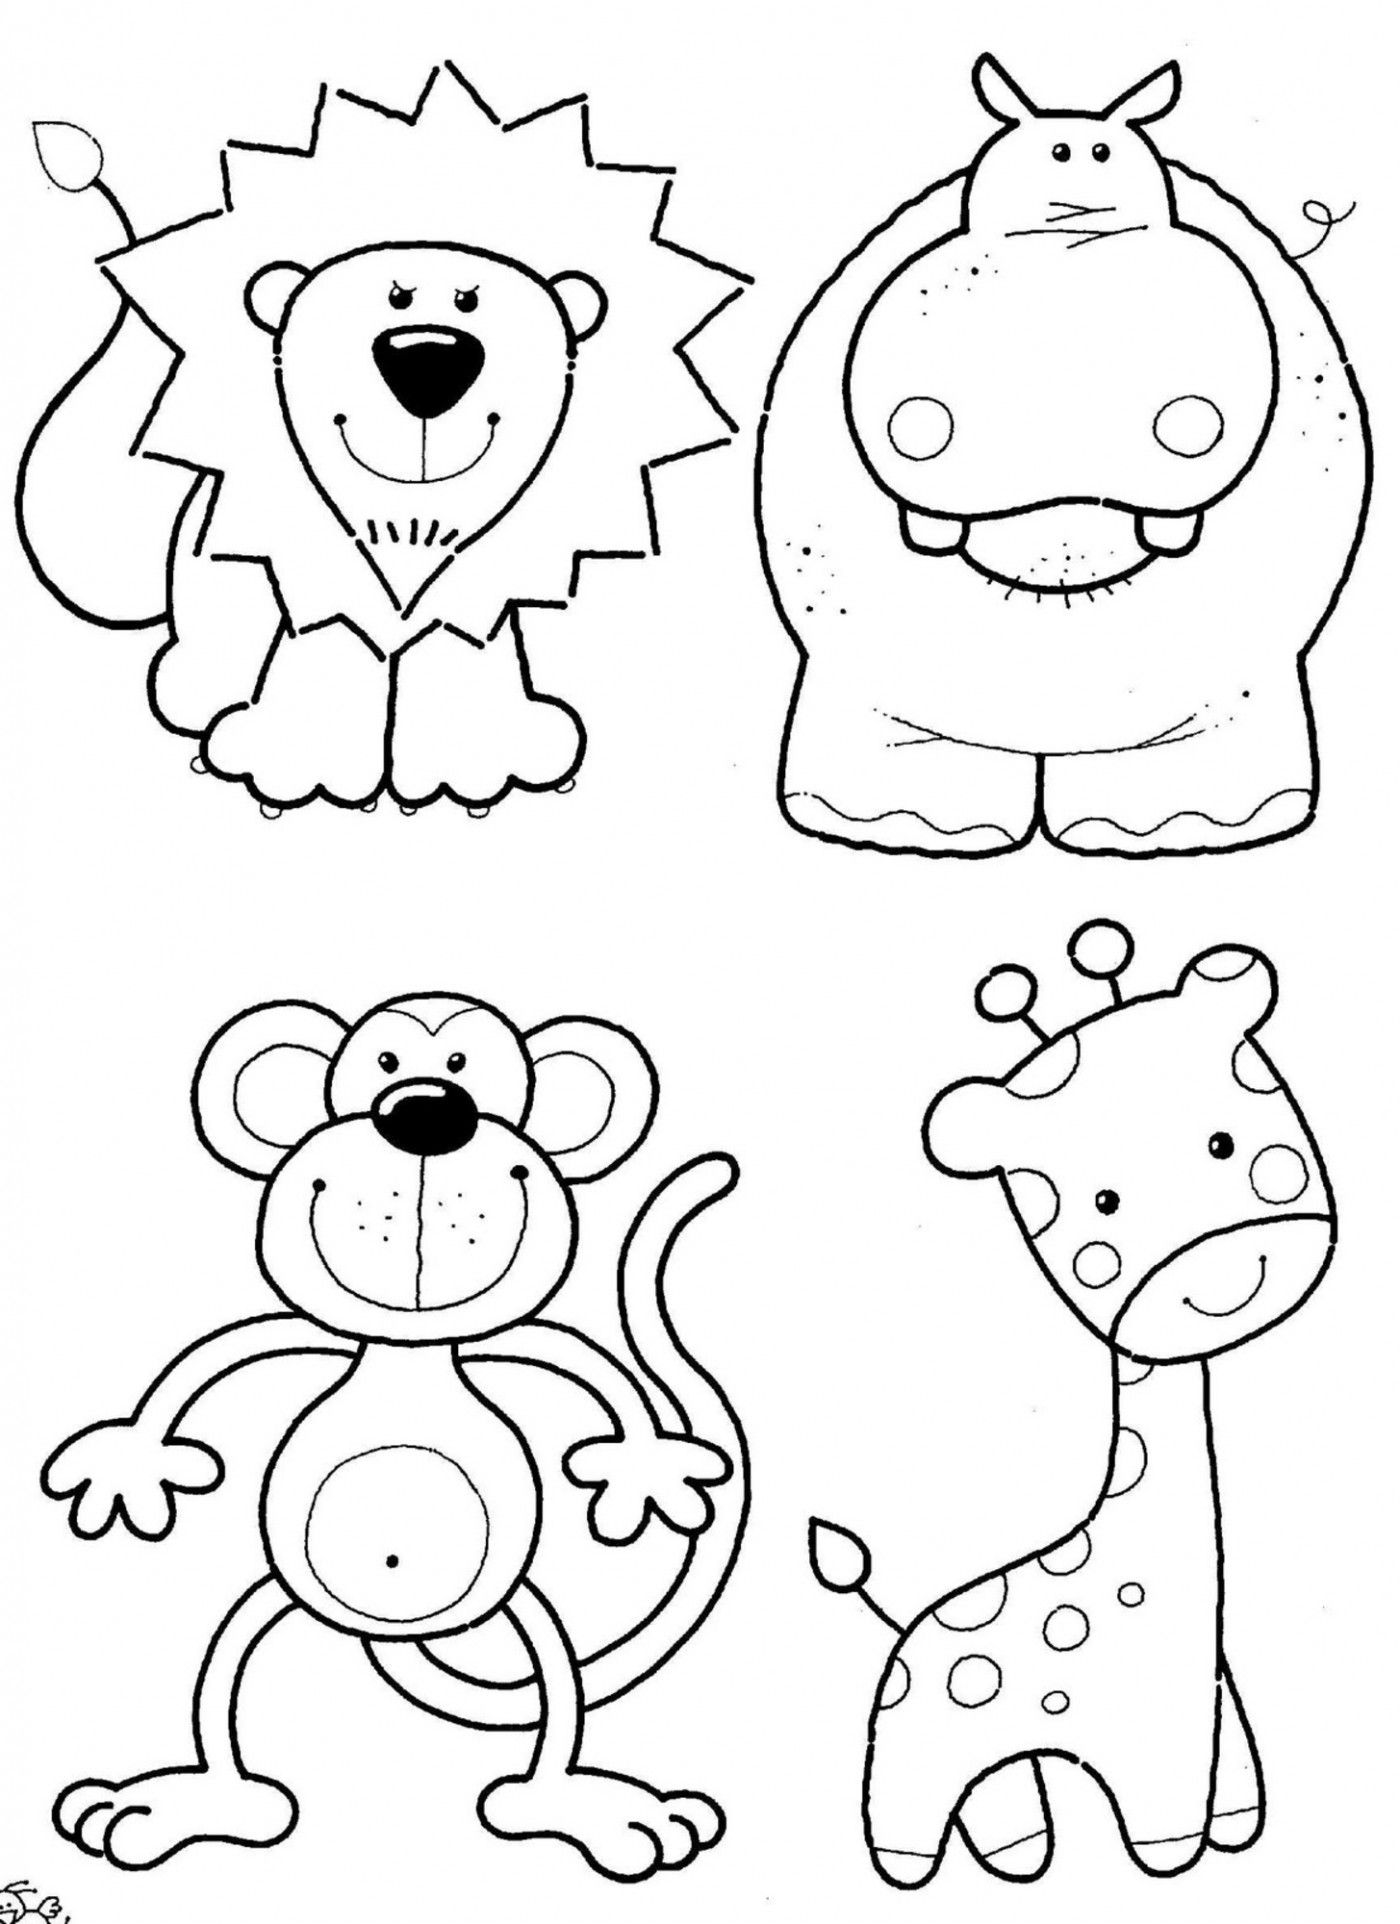 baby zoo animal coloring pages baby zoo animal coloring pages in 2020 animal coloring animal baby pages zoo coloring